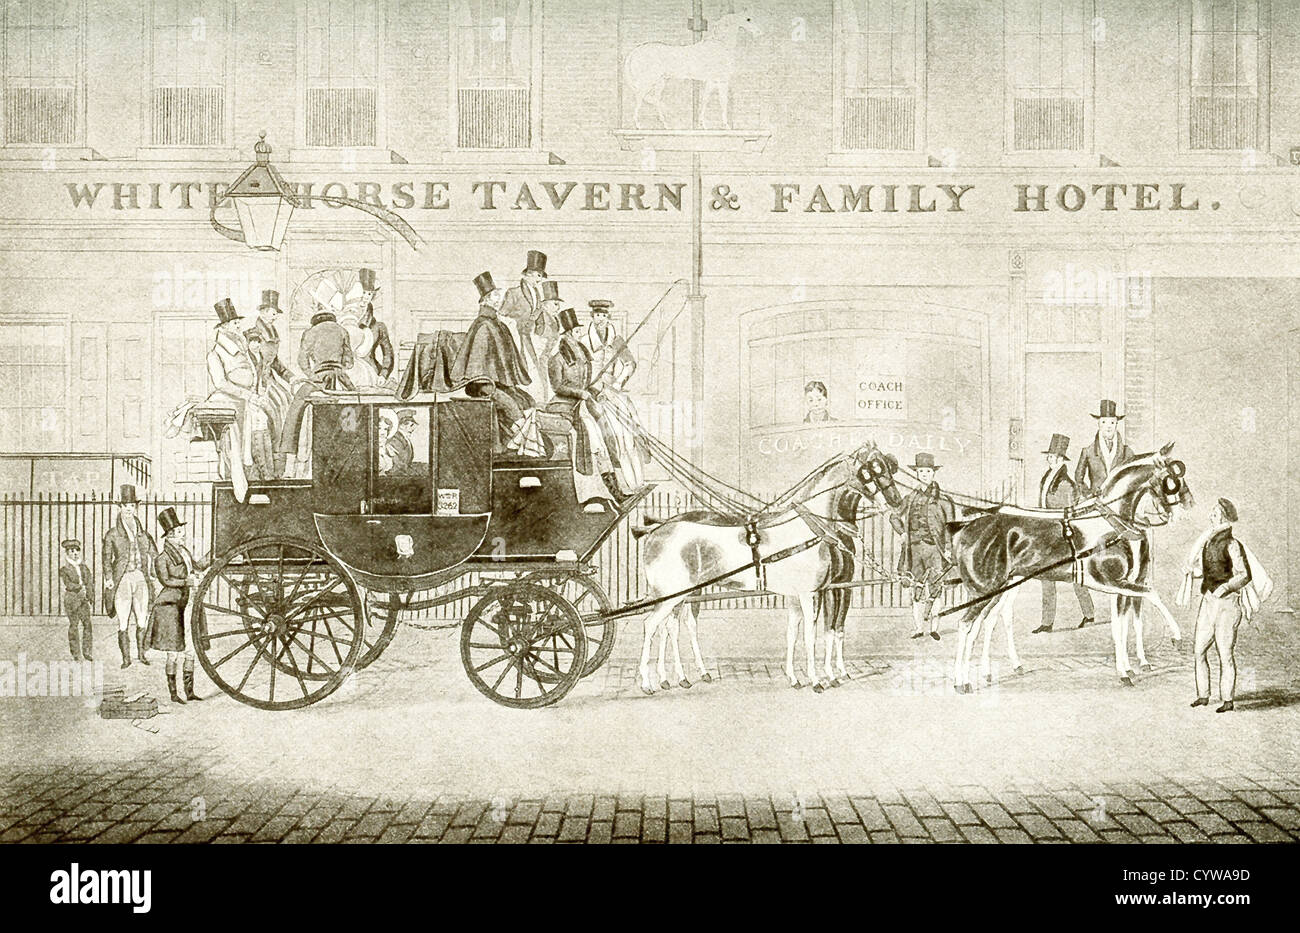 The Cambridge Telegraph Mail, and also Passenger, Coach at the White Horse Tavern and Family Hotel on Fetter Lane - Stock Image